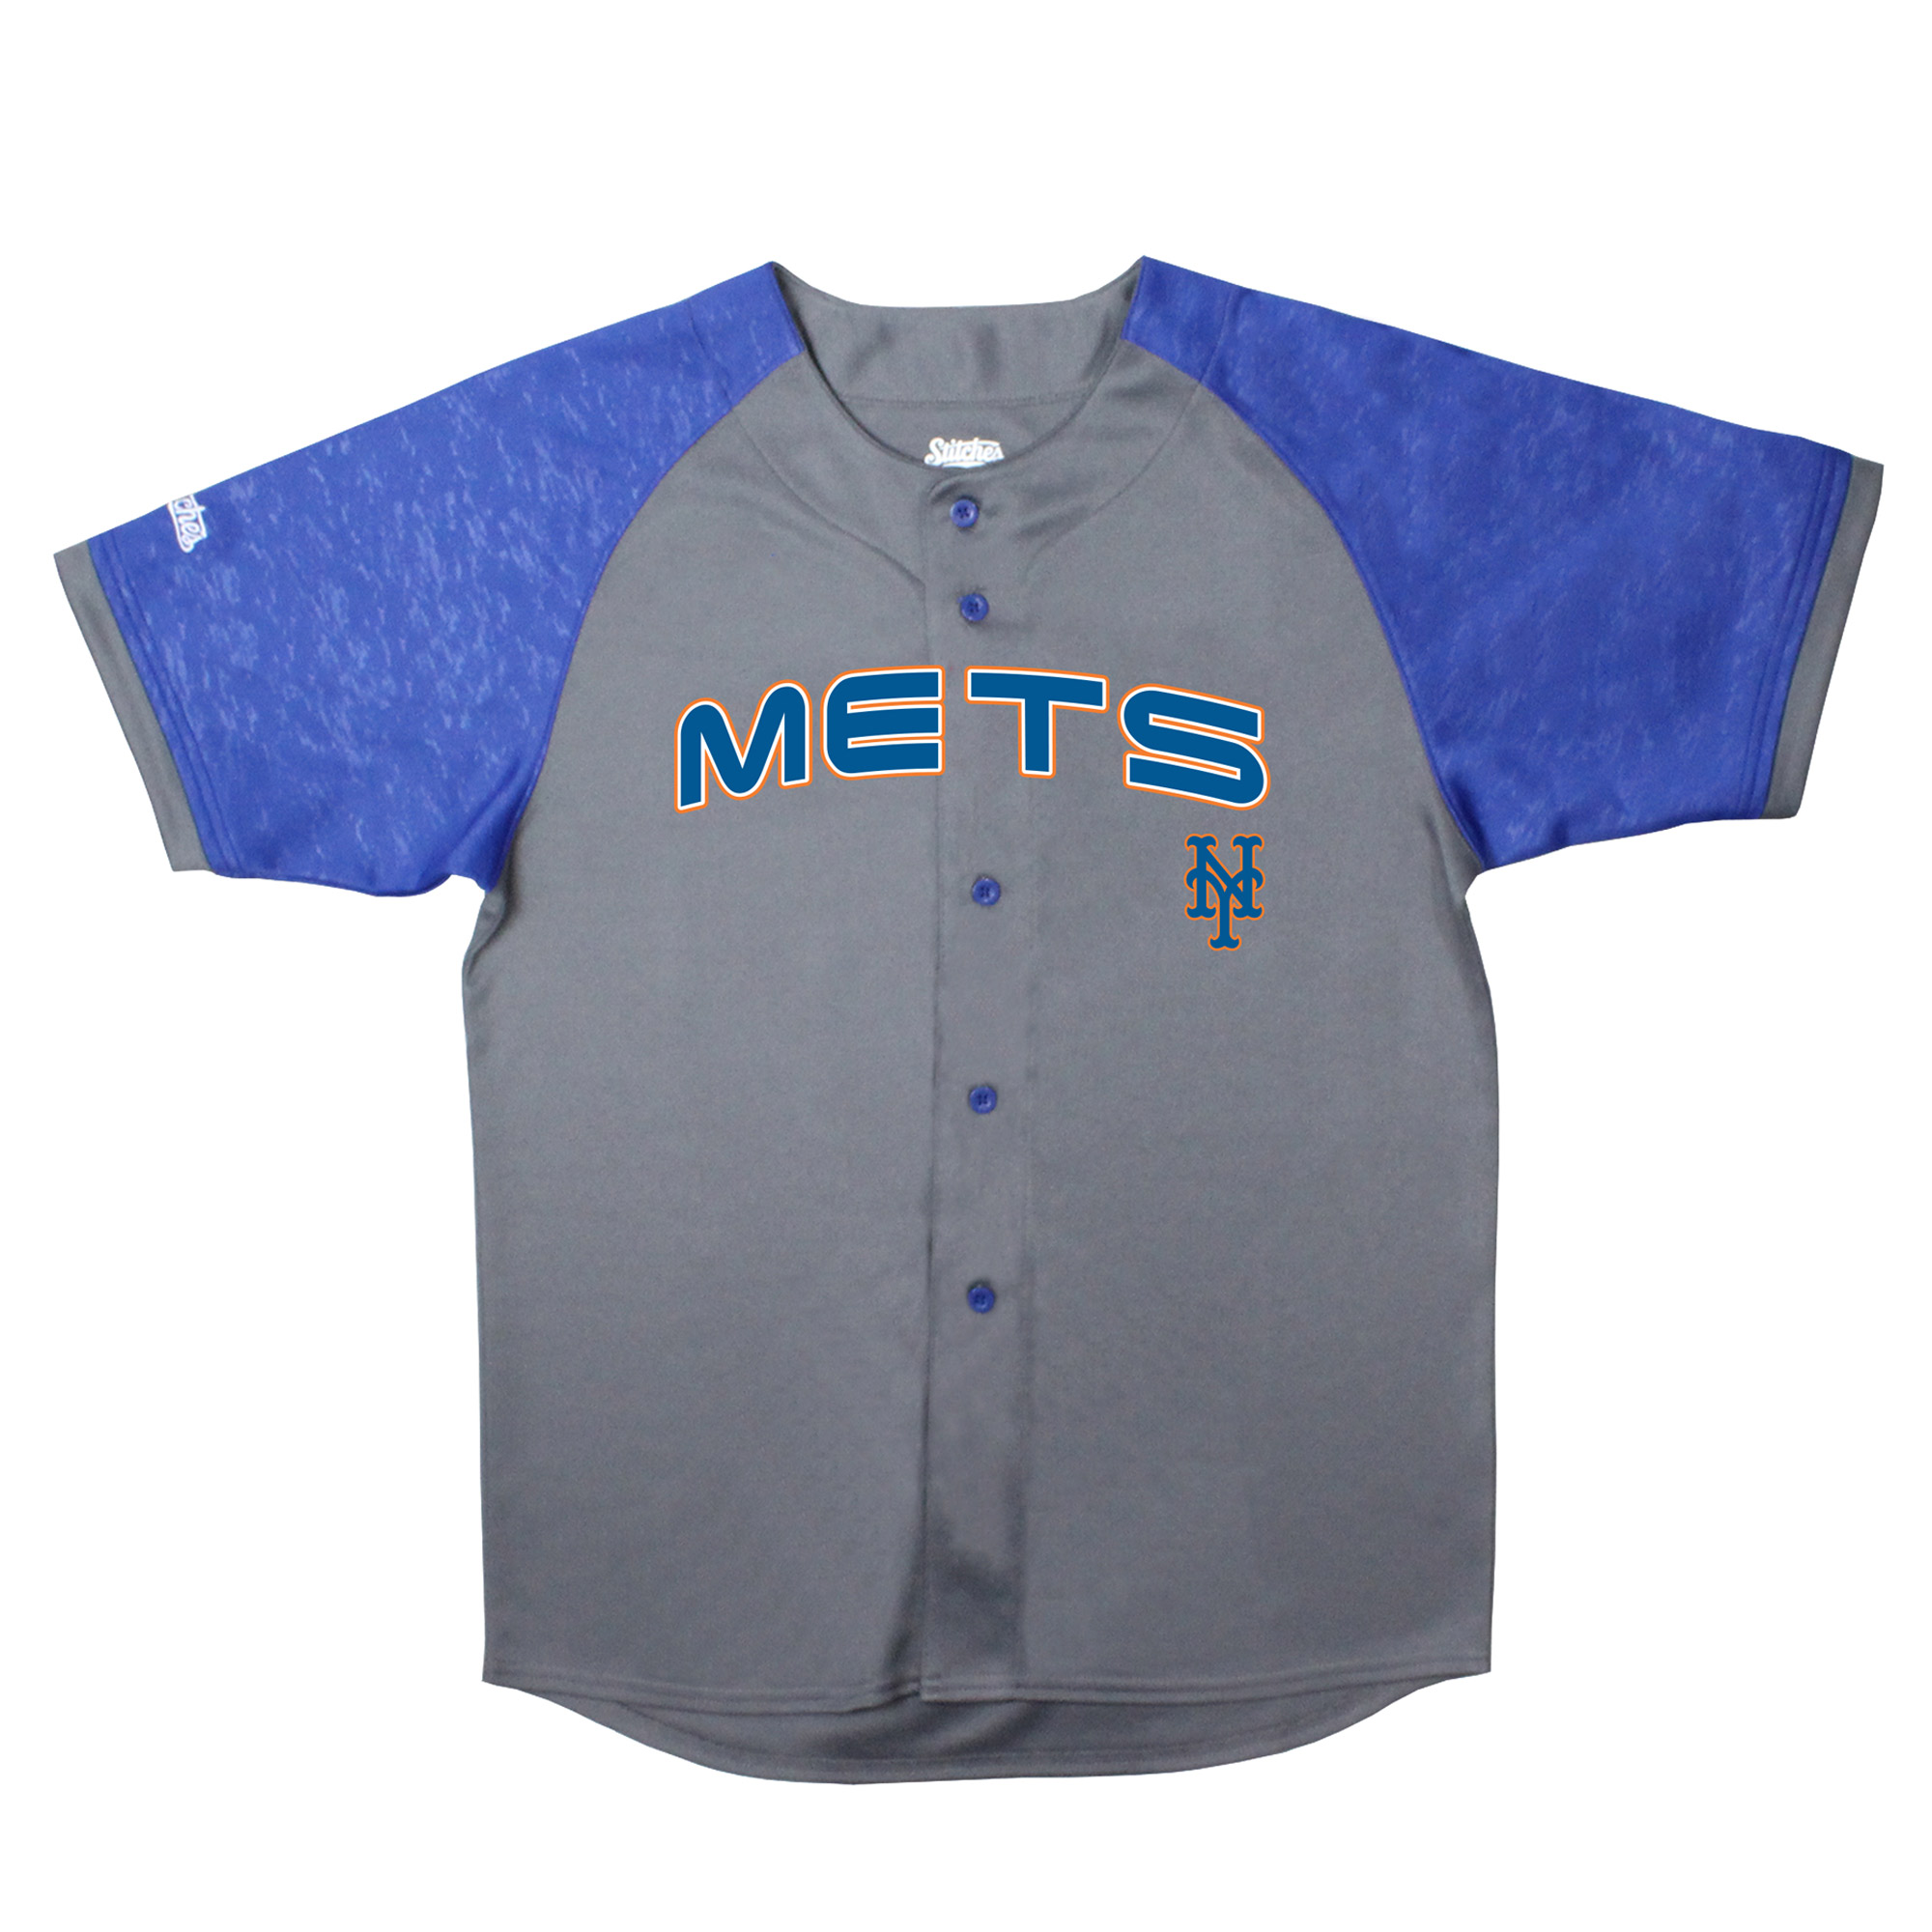 New York Mets Stitches Youth Glitch Jersey - Charcoal/Royal